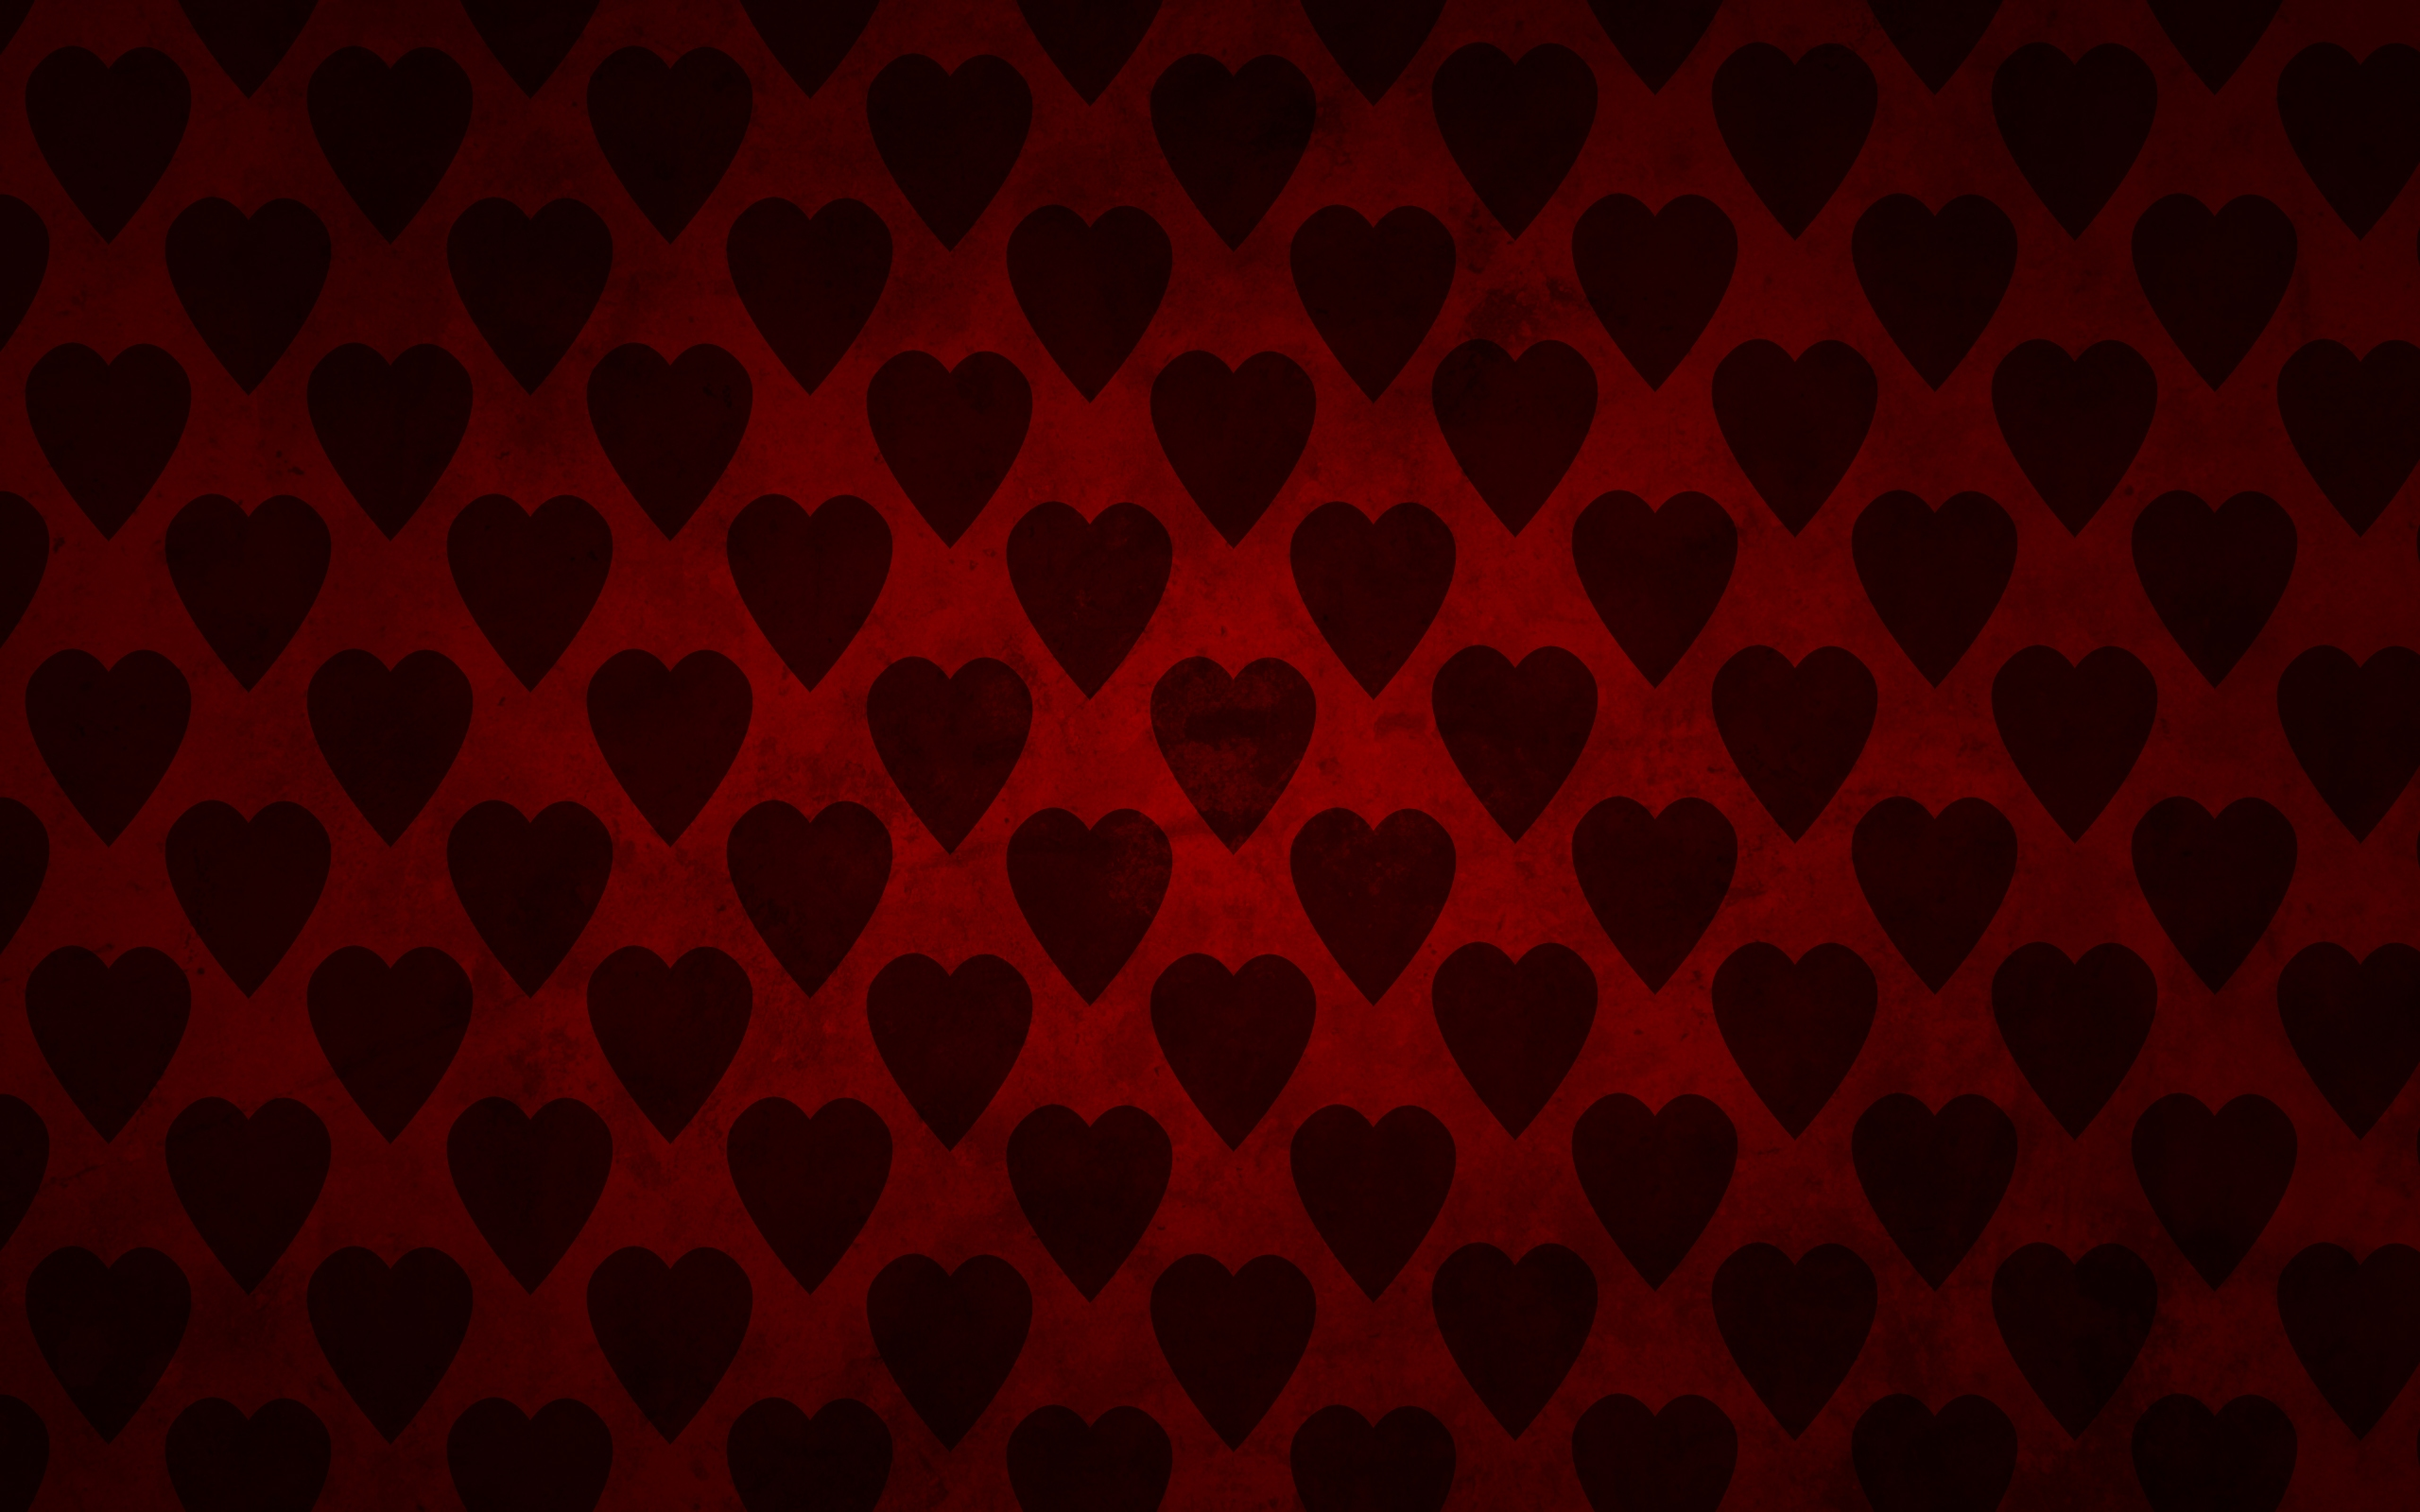 texture, download photo, heart pattern